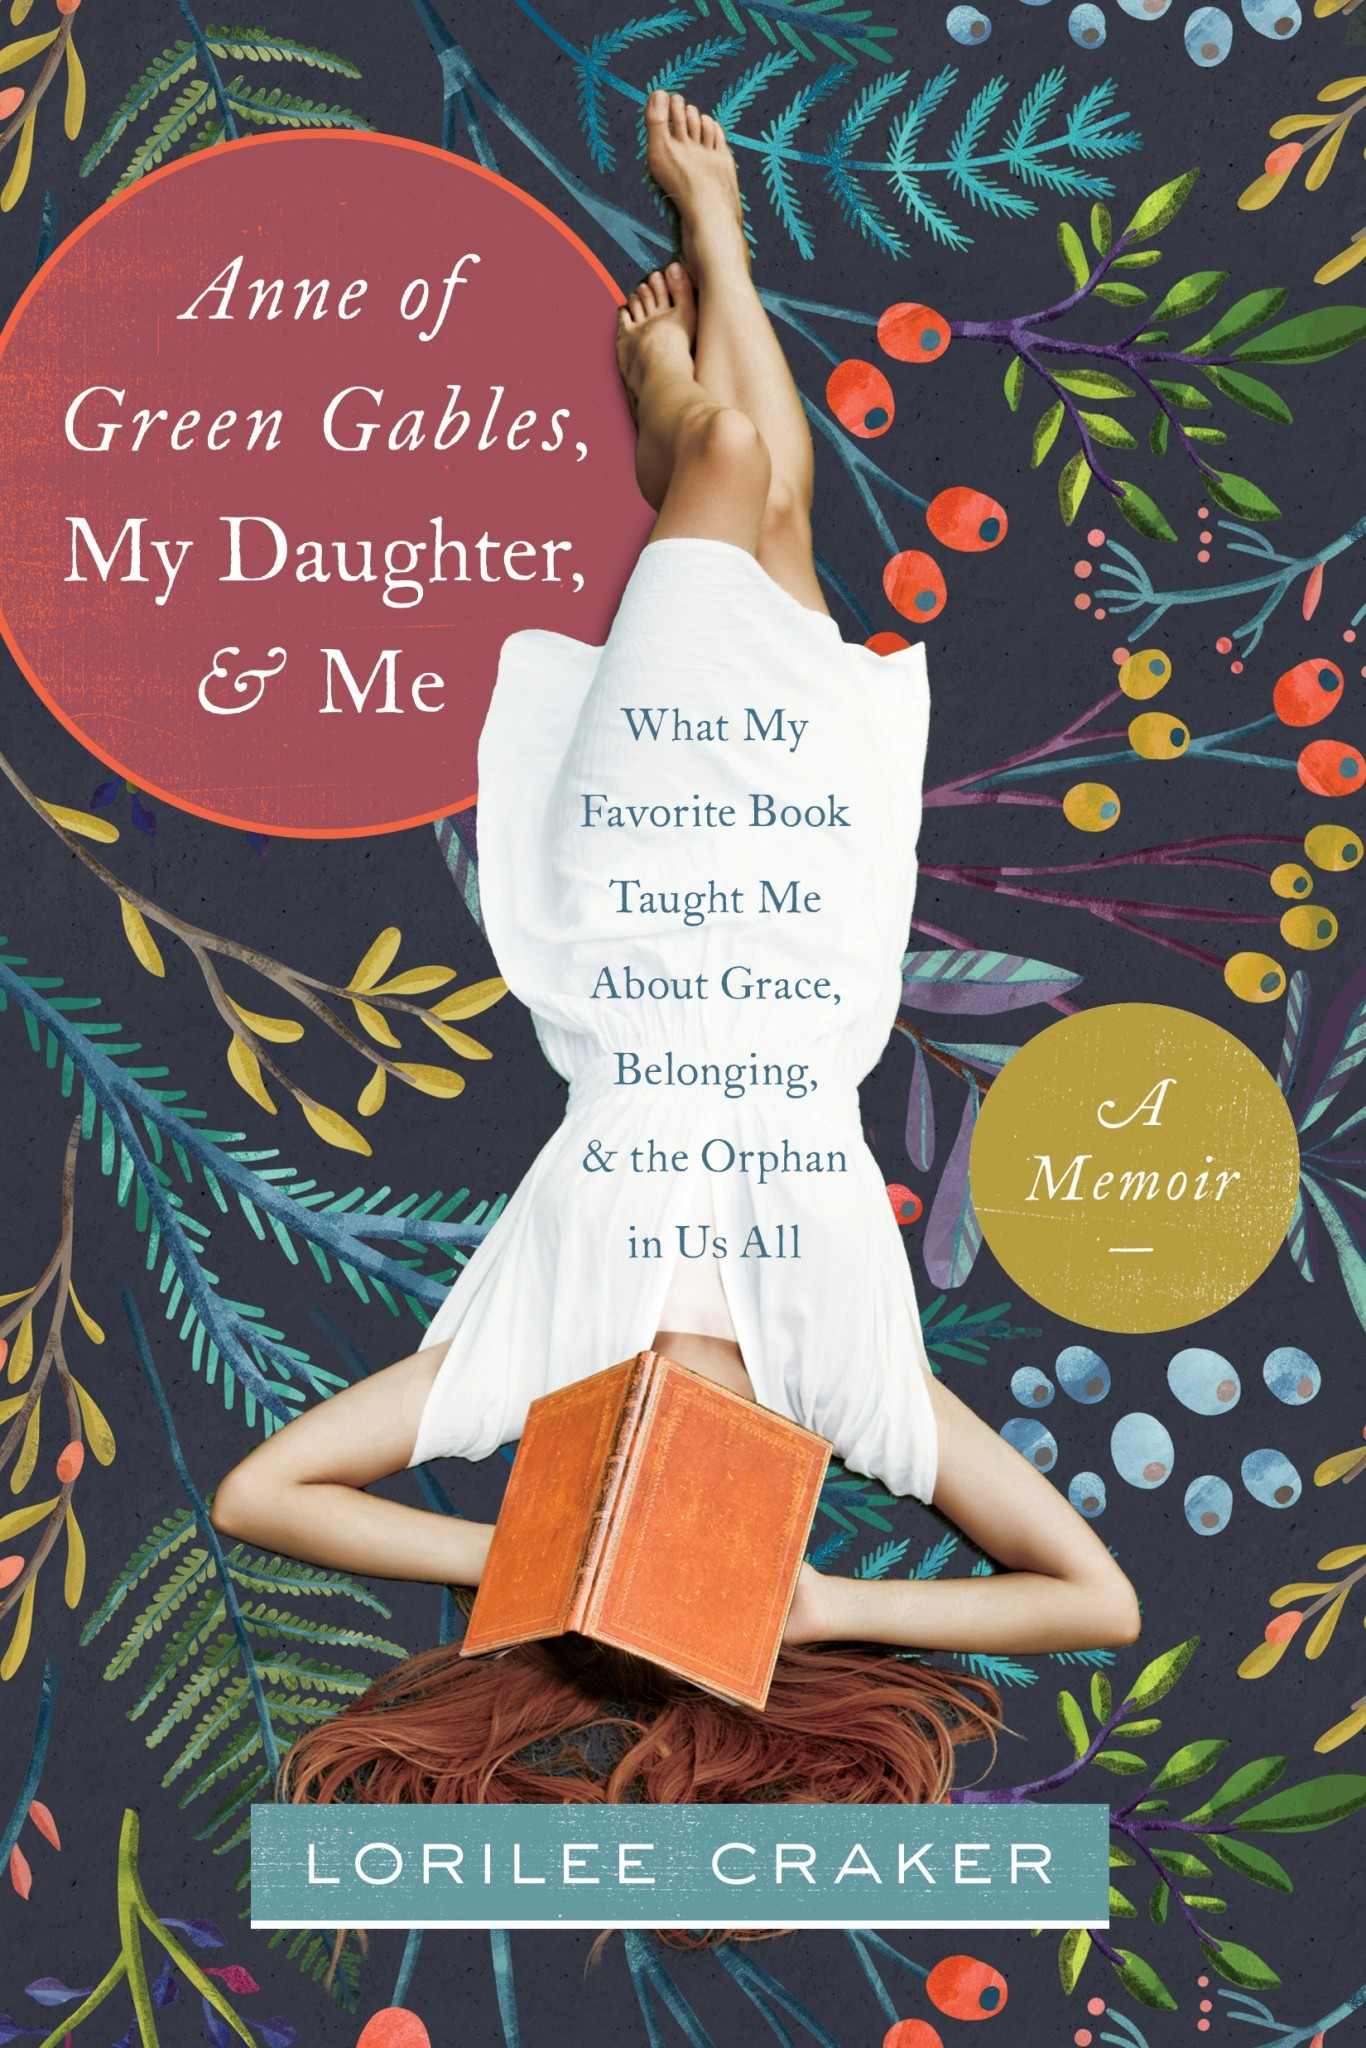 Anne of Green Gables, My Daughter, and Me What My Favorite Book Taught Me about Grace, Belonging, and the Orphan in Us All